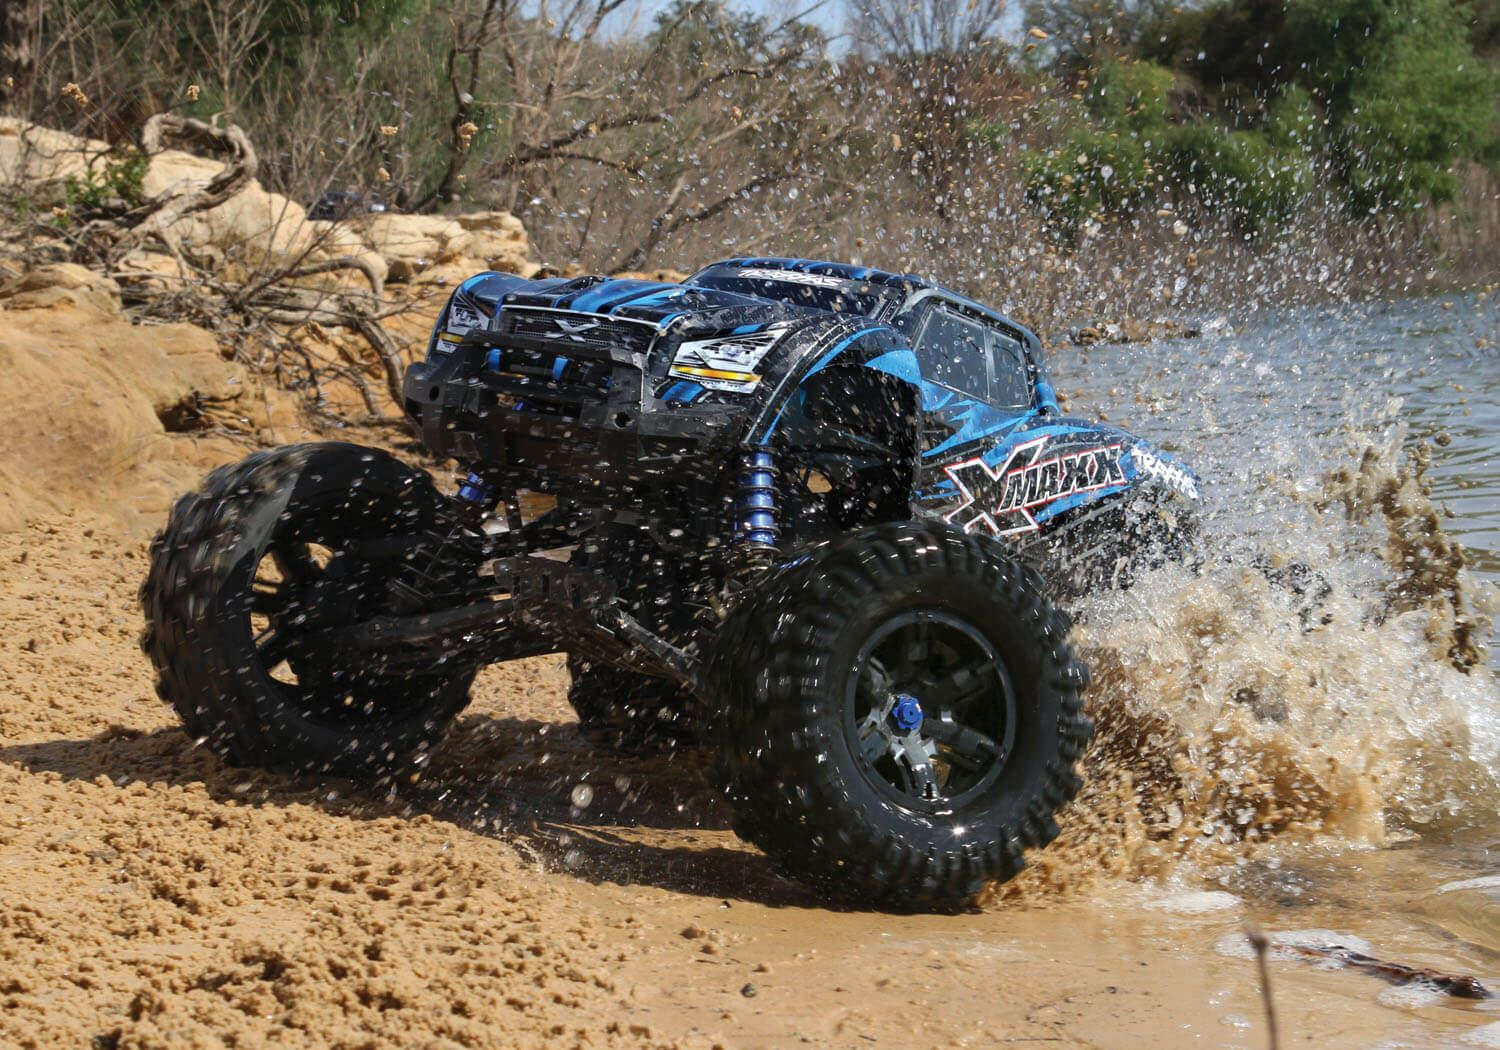 Traxxas XMaxx 1/6 RC Monster Truck RTR. Waterproof! This